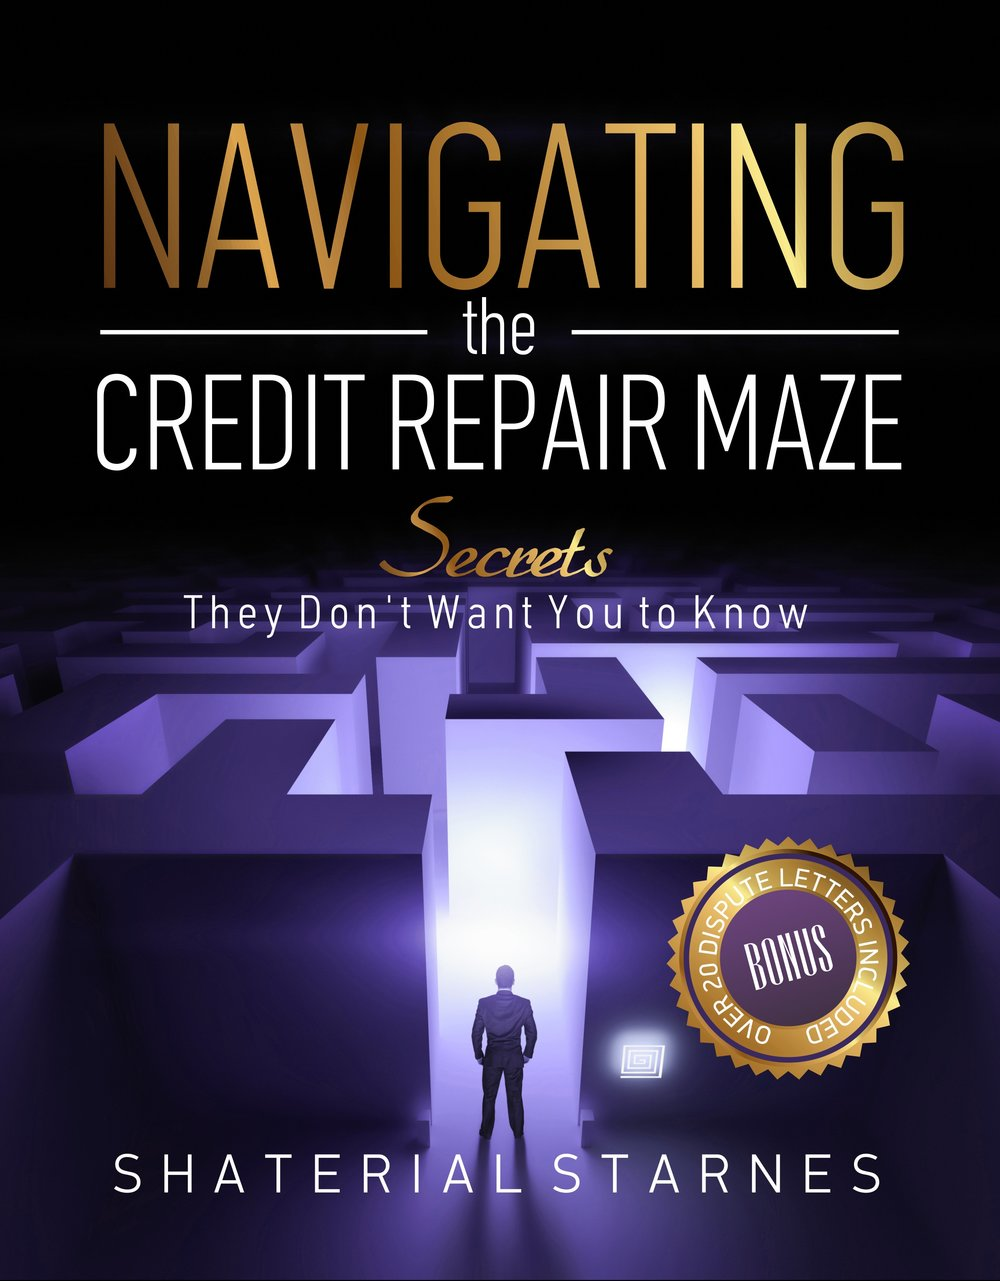 """Navigating The Credit Repair Maze""      Author: Shaterial Starnes"